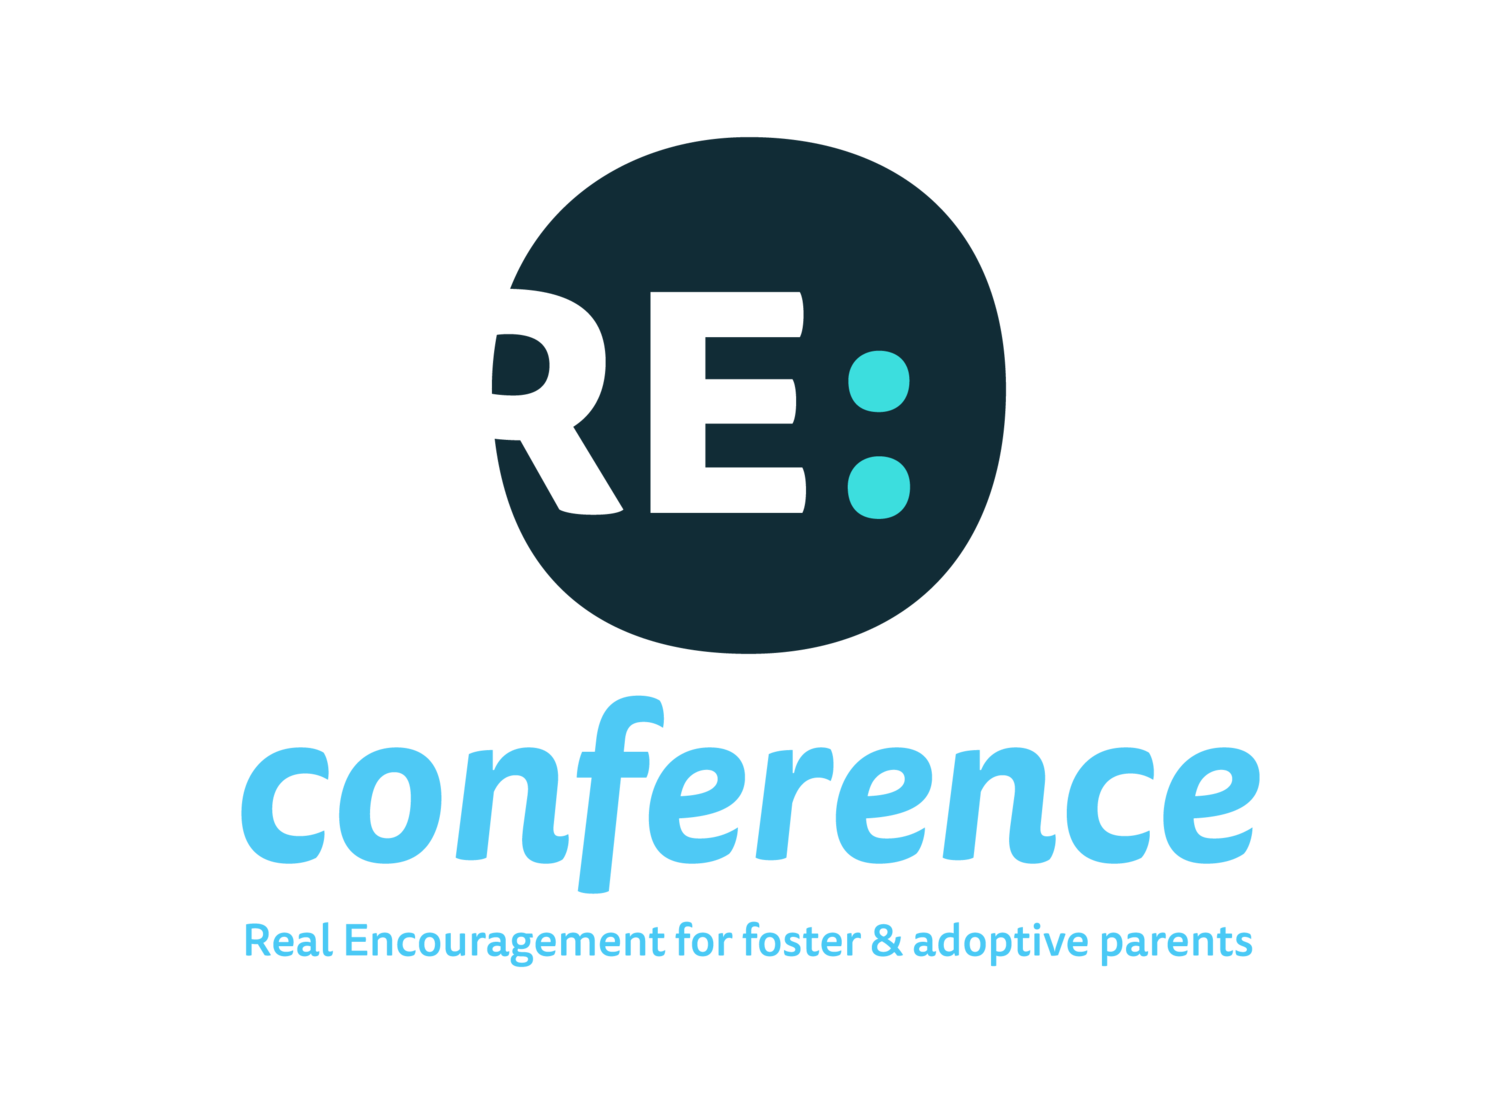 RE: Conference